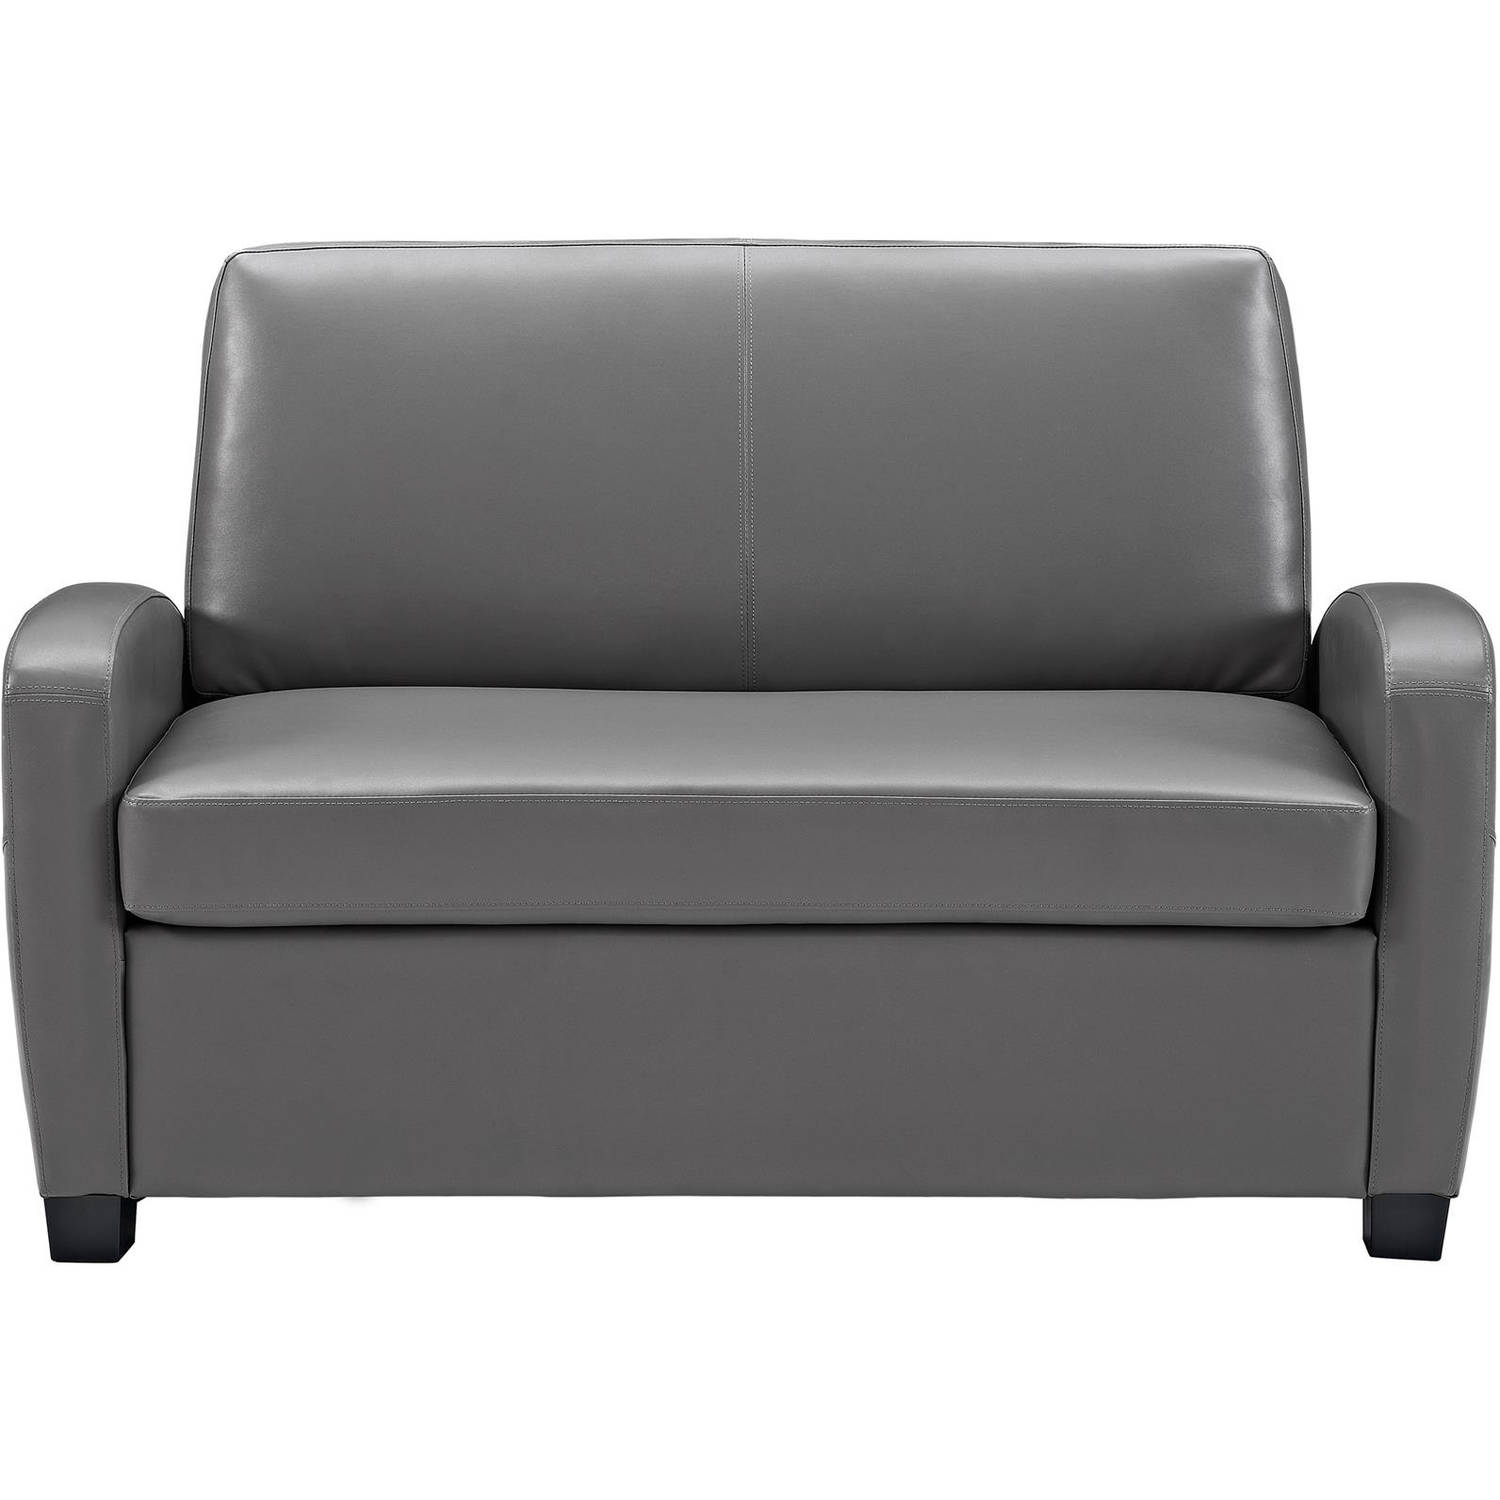 72 Inch Sleeper Sofa 72 Inch Sleeper Sofa Wayfair